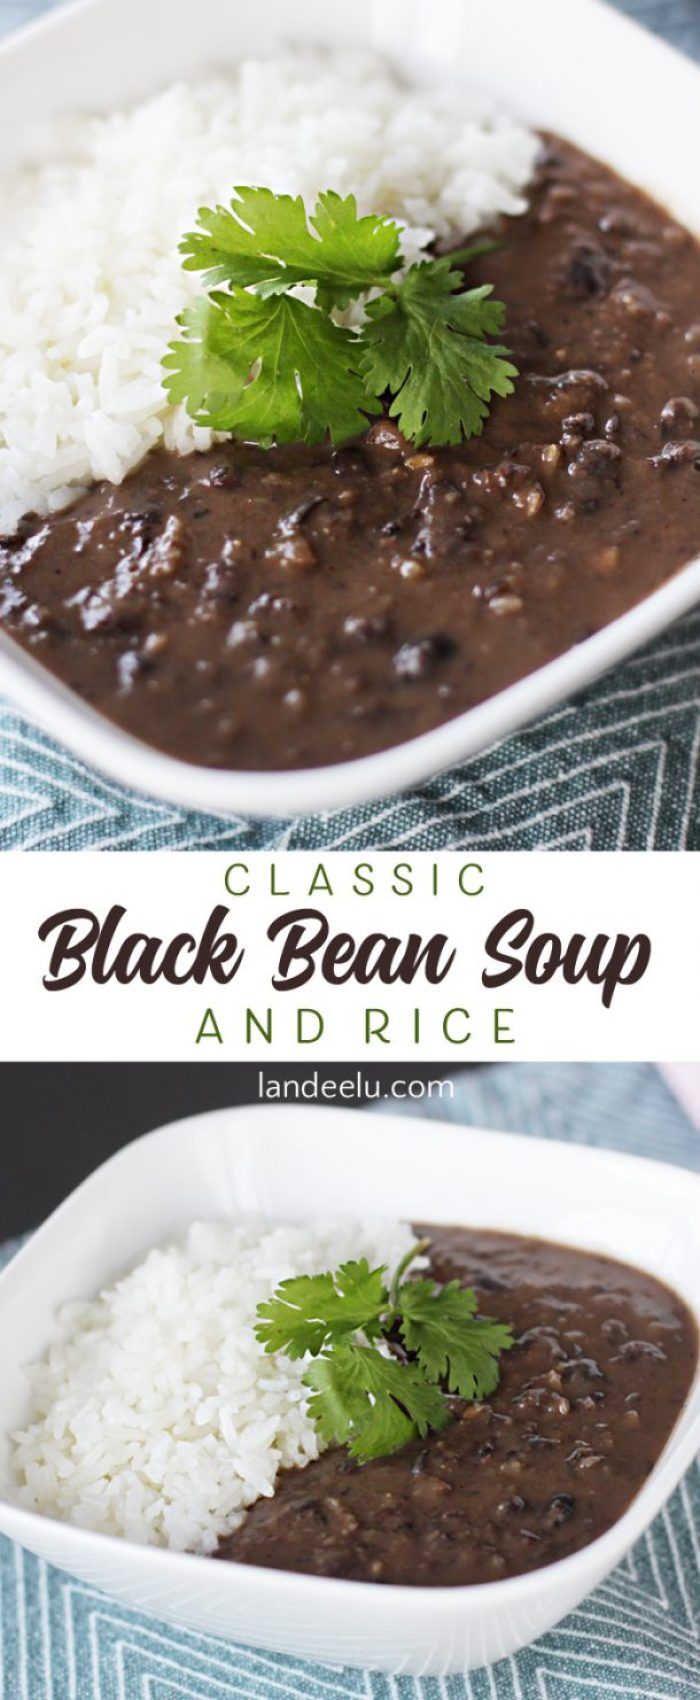 The classic black bean soup recipe you've been looking for!